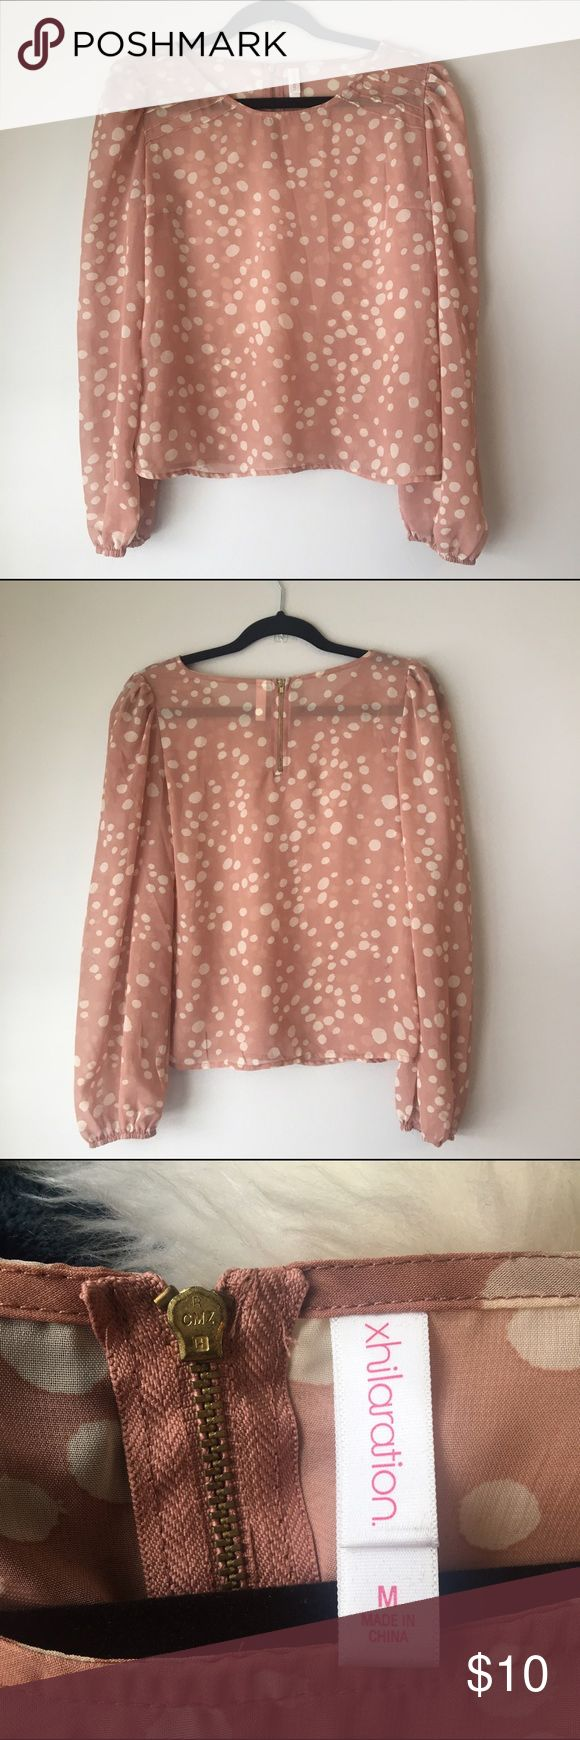 Pink/Beige Long Sleeve Top Unworn- Has a zipped back and cinched sleeves, sits right at waist. Great relaxed fit in a classy shirt. Xhilaration Tops Blouses